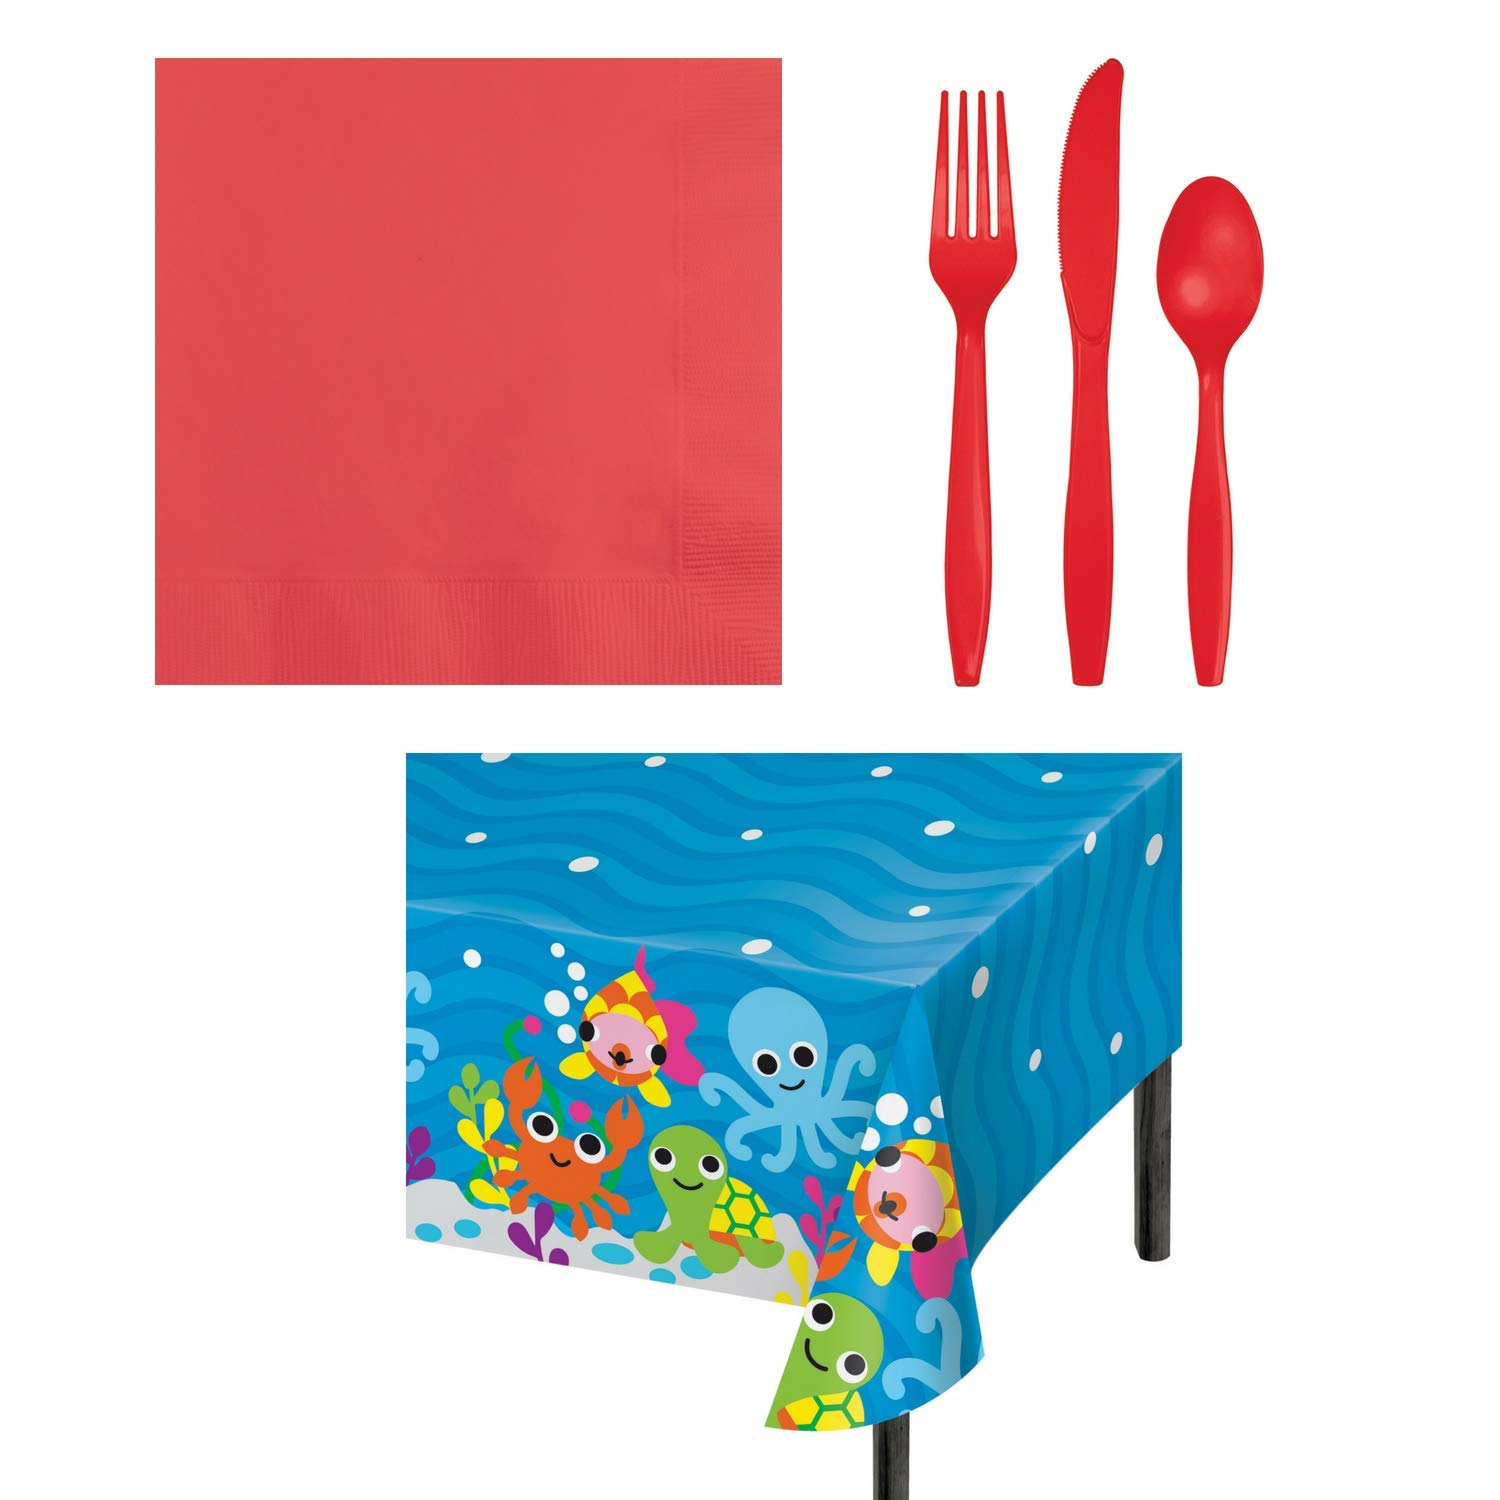 Ocean Themed Party Supply Bundle for 16 Guests- 50 Coral Napkins, 48 Assorted Coral Disposable Silverware Cutlery, 1 Ocean Print Plastic Tablecloth